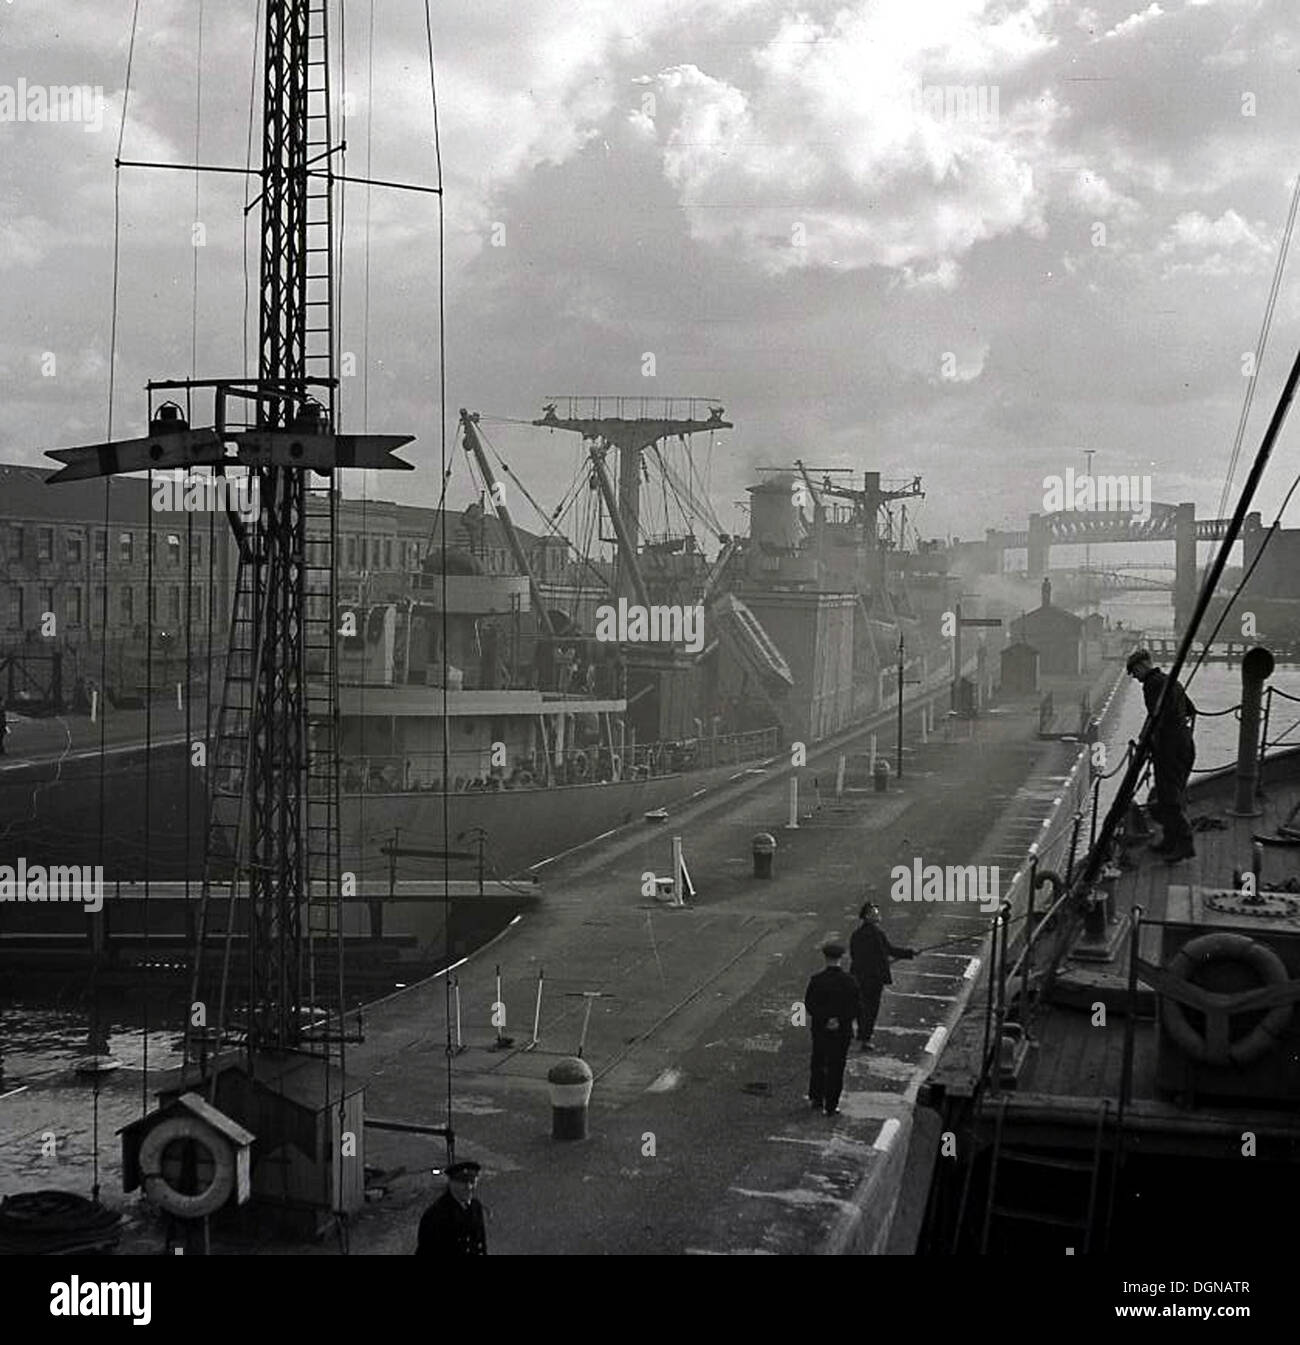 1950s, historical picture of a large ship moored quayside at the docks, Newcastle-upon-Tyne, England, UK. - Stock Image